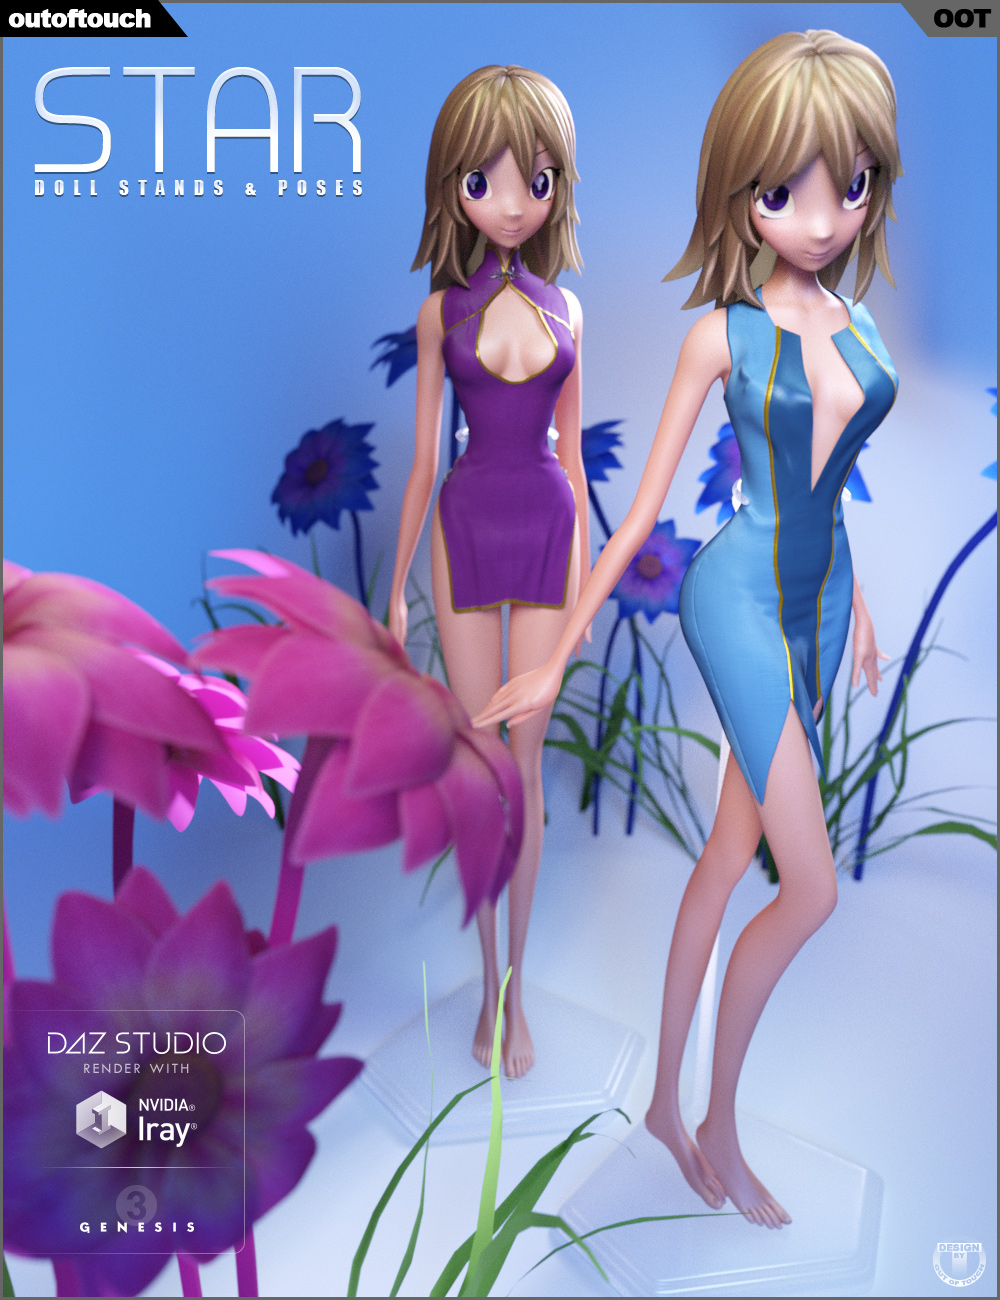 Doll Display Stands and Poses for Star 2.0 by: outoftouch, 3D Models by Daz 3D